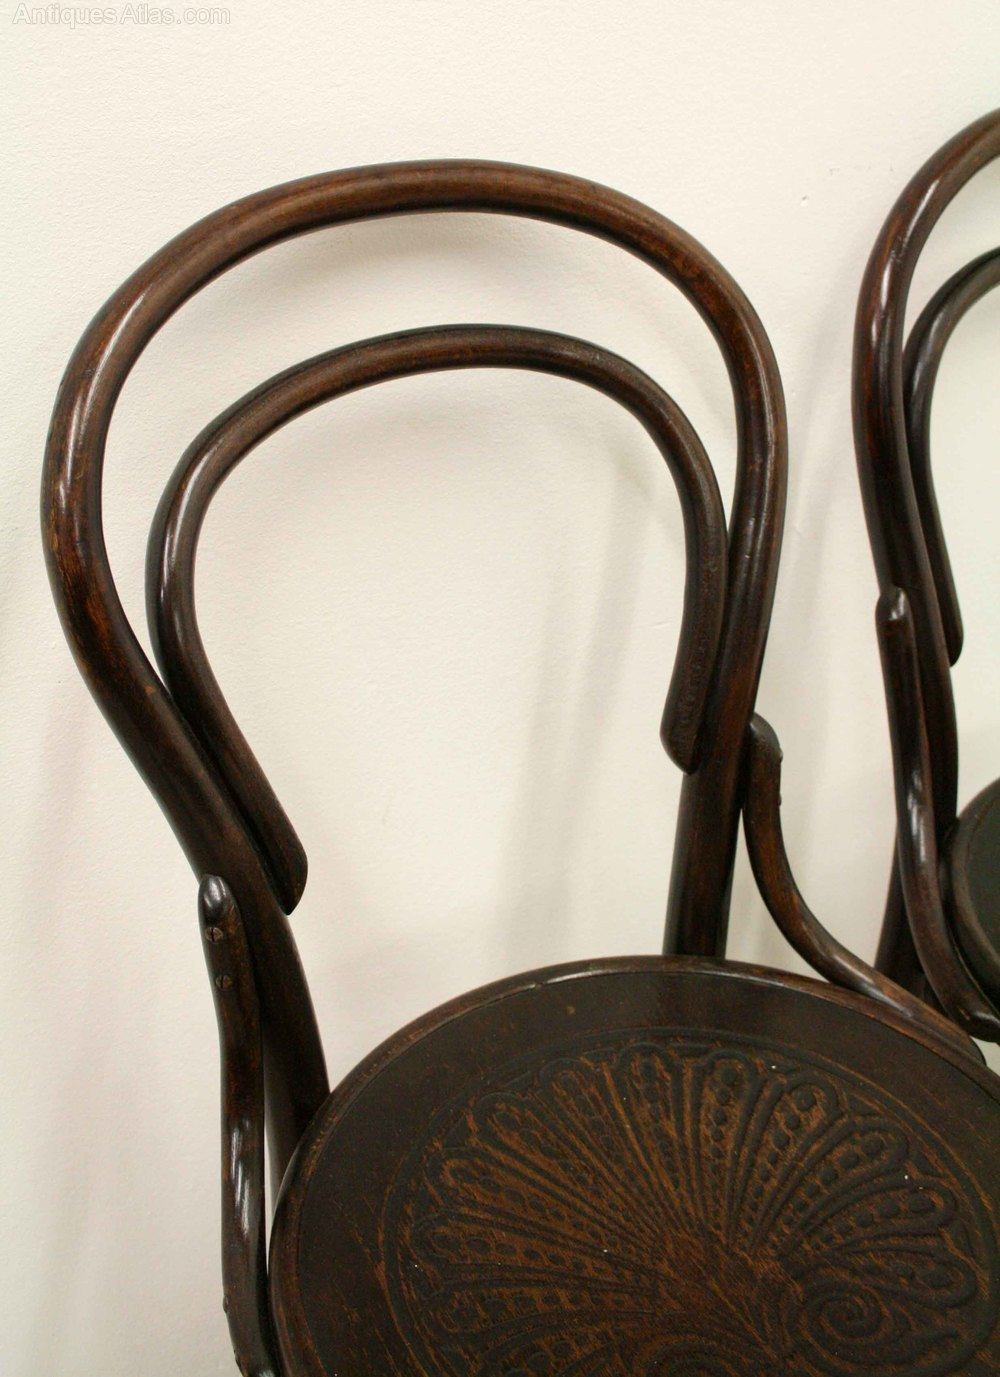 Antique thonet bentwood chair - Pair Of Thonet Bentwood Chairs Antique Armchairs Occasional Chairs Stools